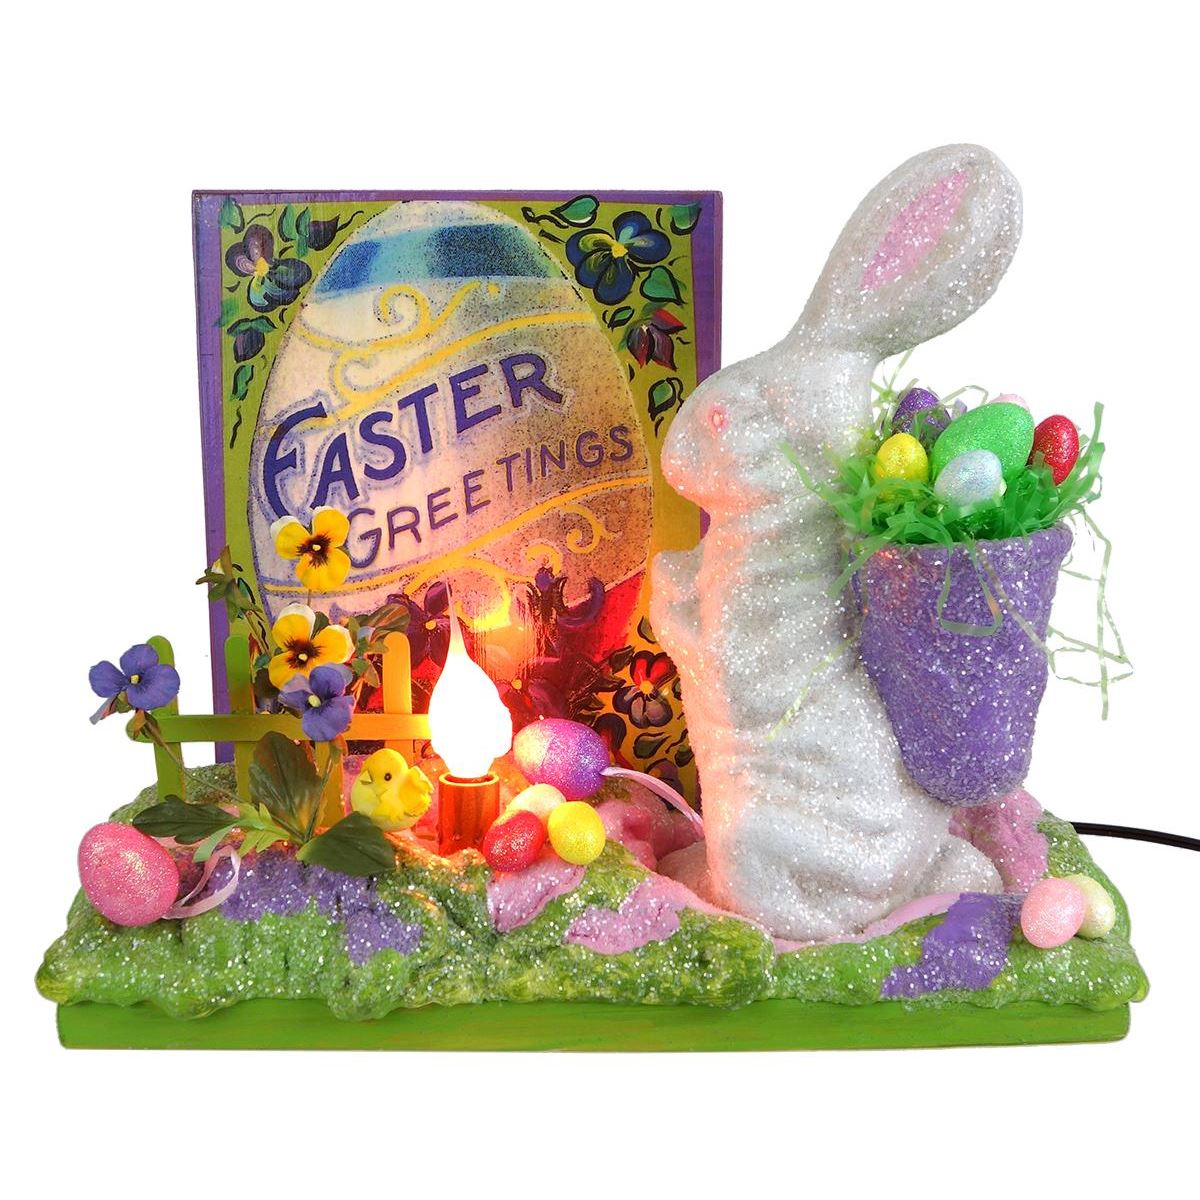 Easter Greetings Display Vignette By Seasons Gone By Traditions